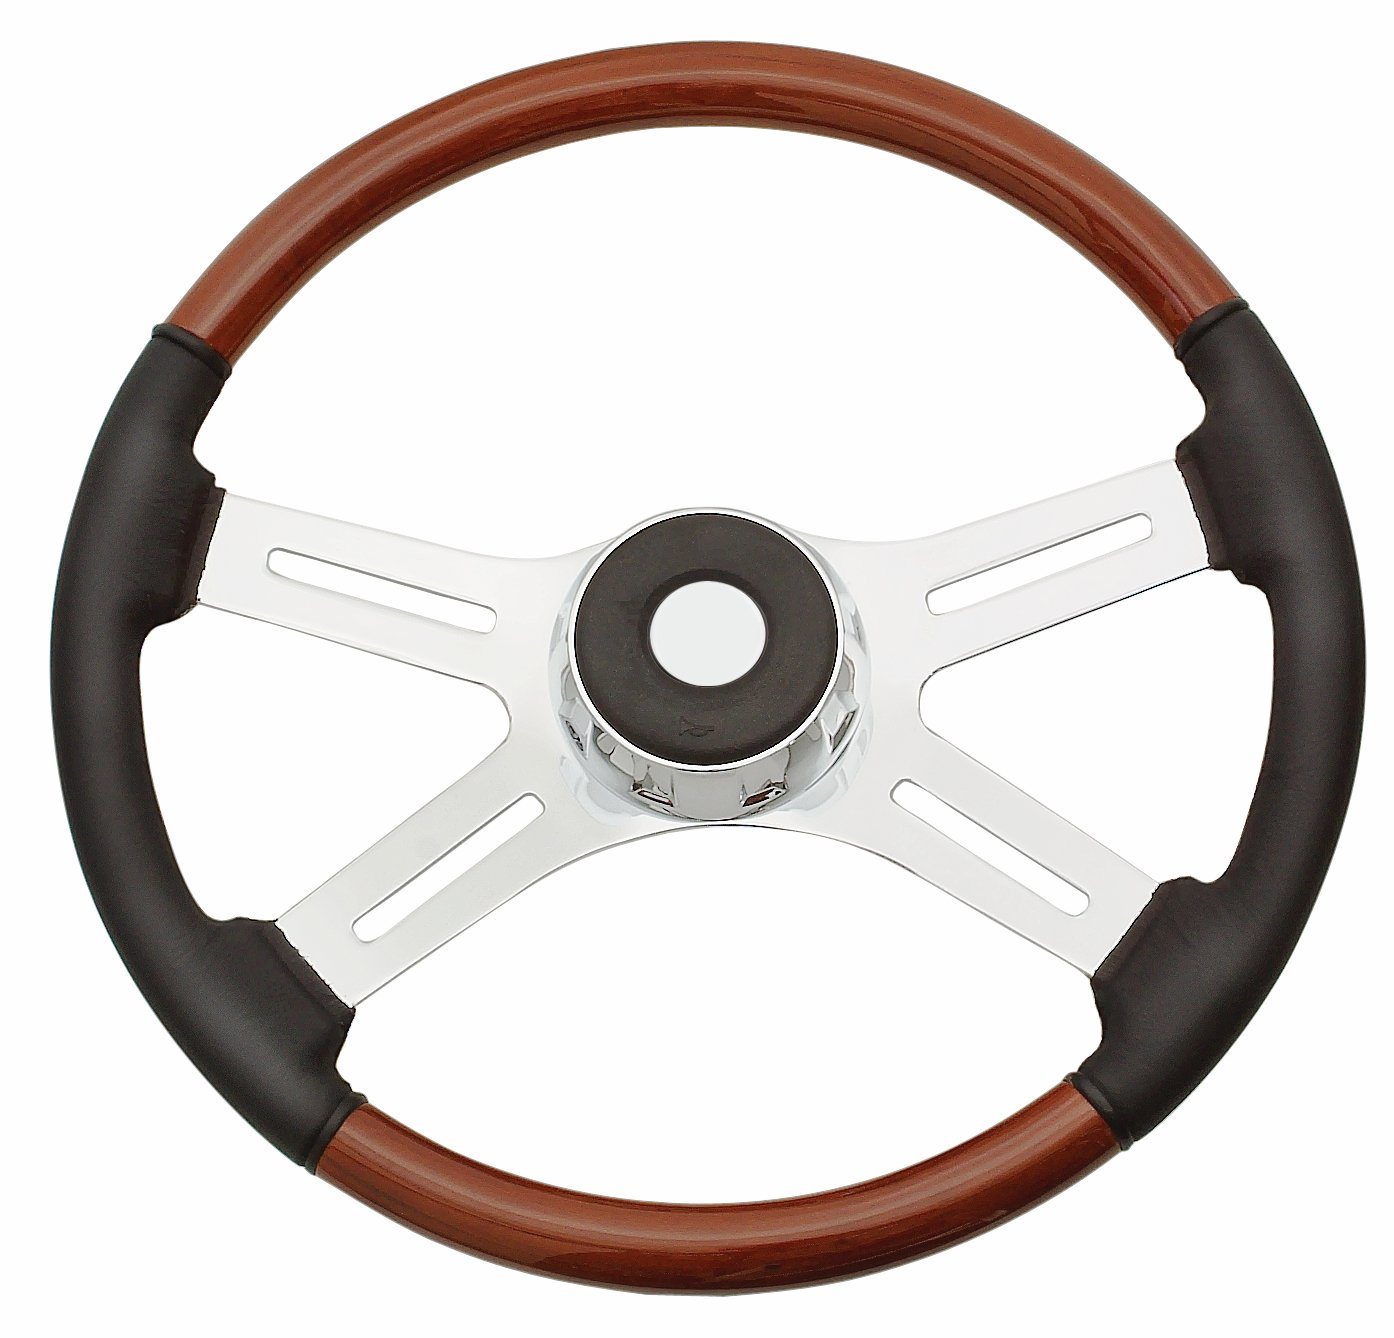 Woody's WP-SWPB8693L Rosewood Chrome Truck Steering Wheel (Beautiful African Hardwood) by Woody's